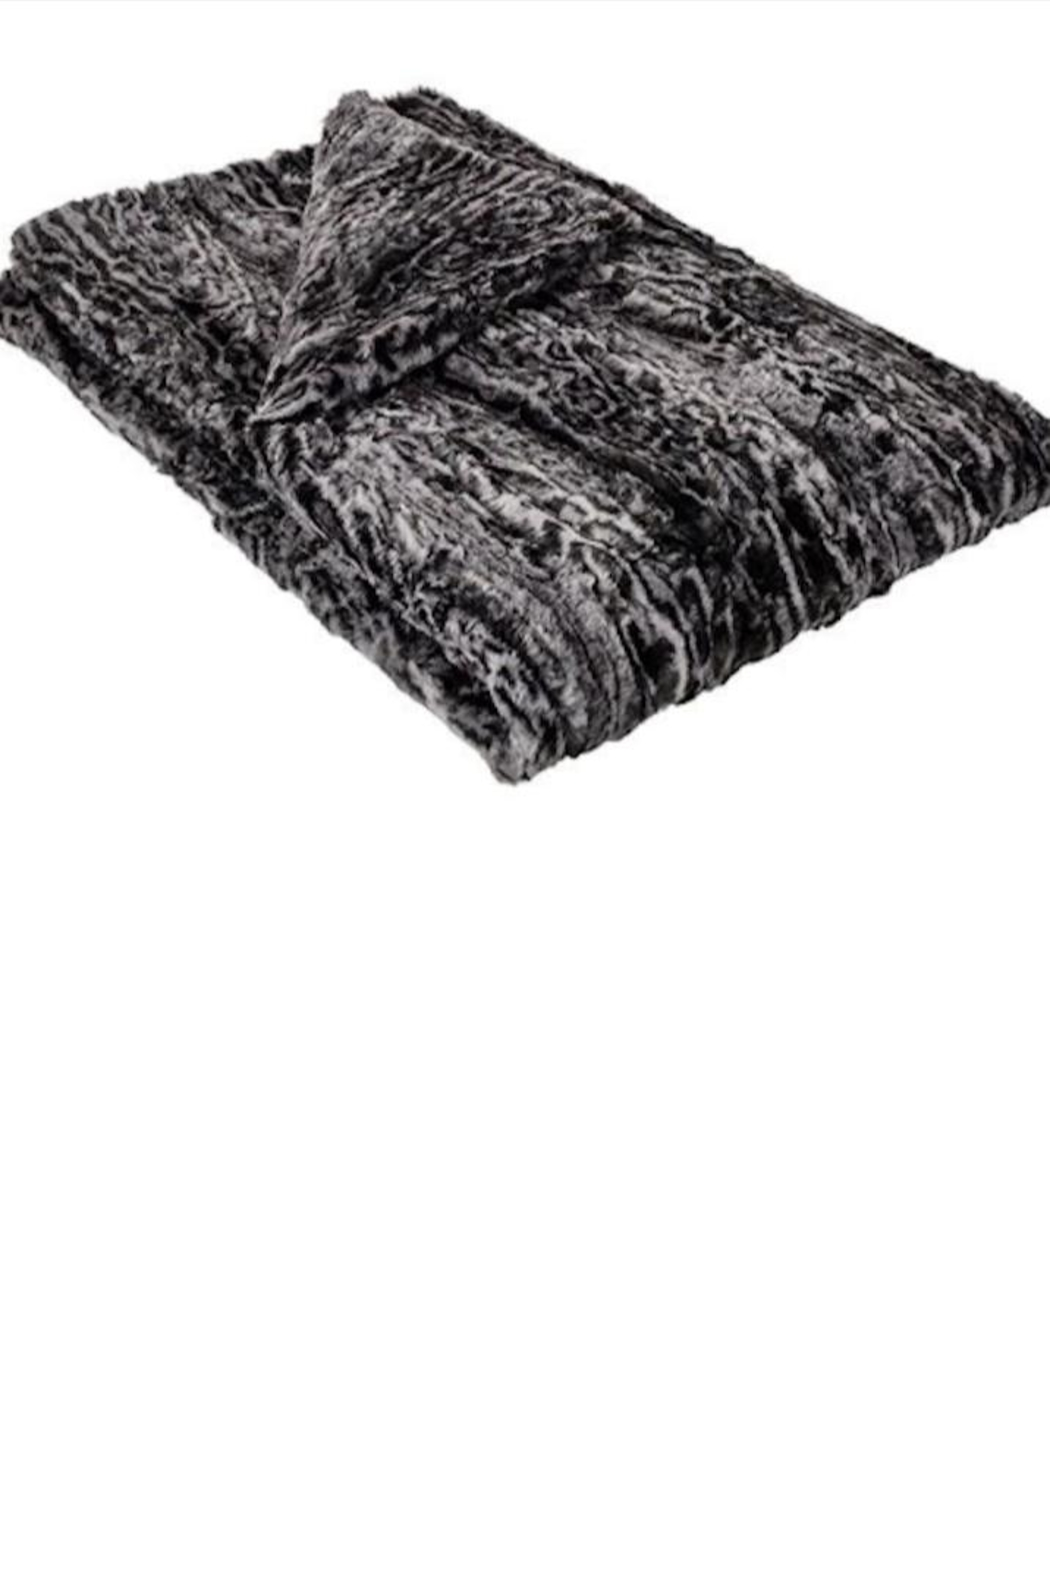 Pandemonium Millinery  Luxury Faux-Fur Throw - Main Image